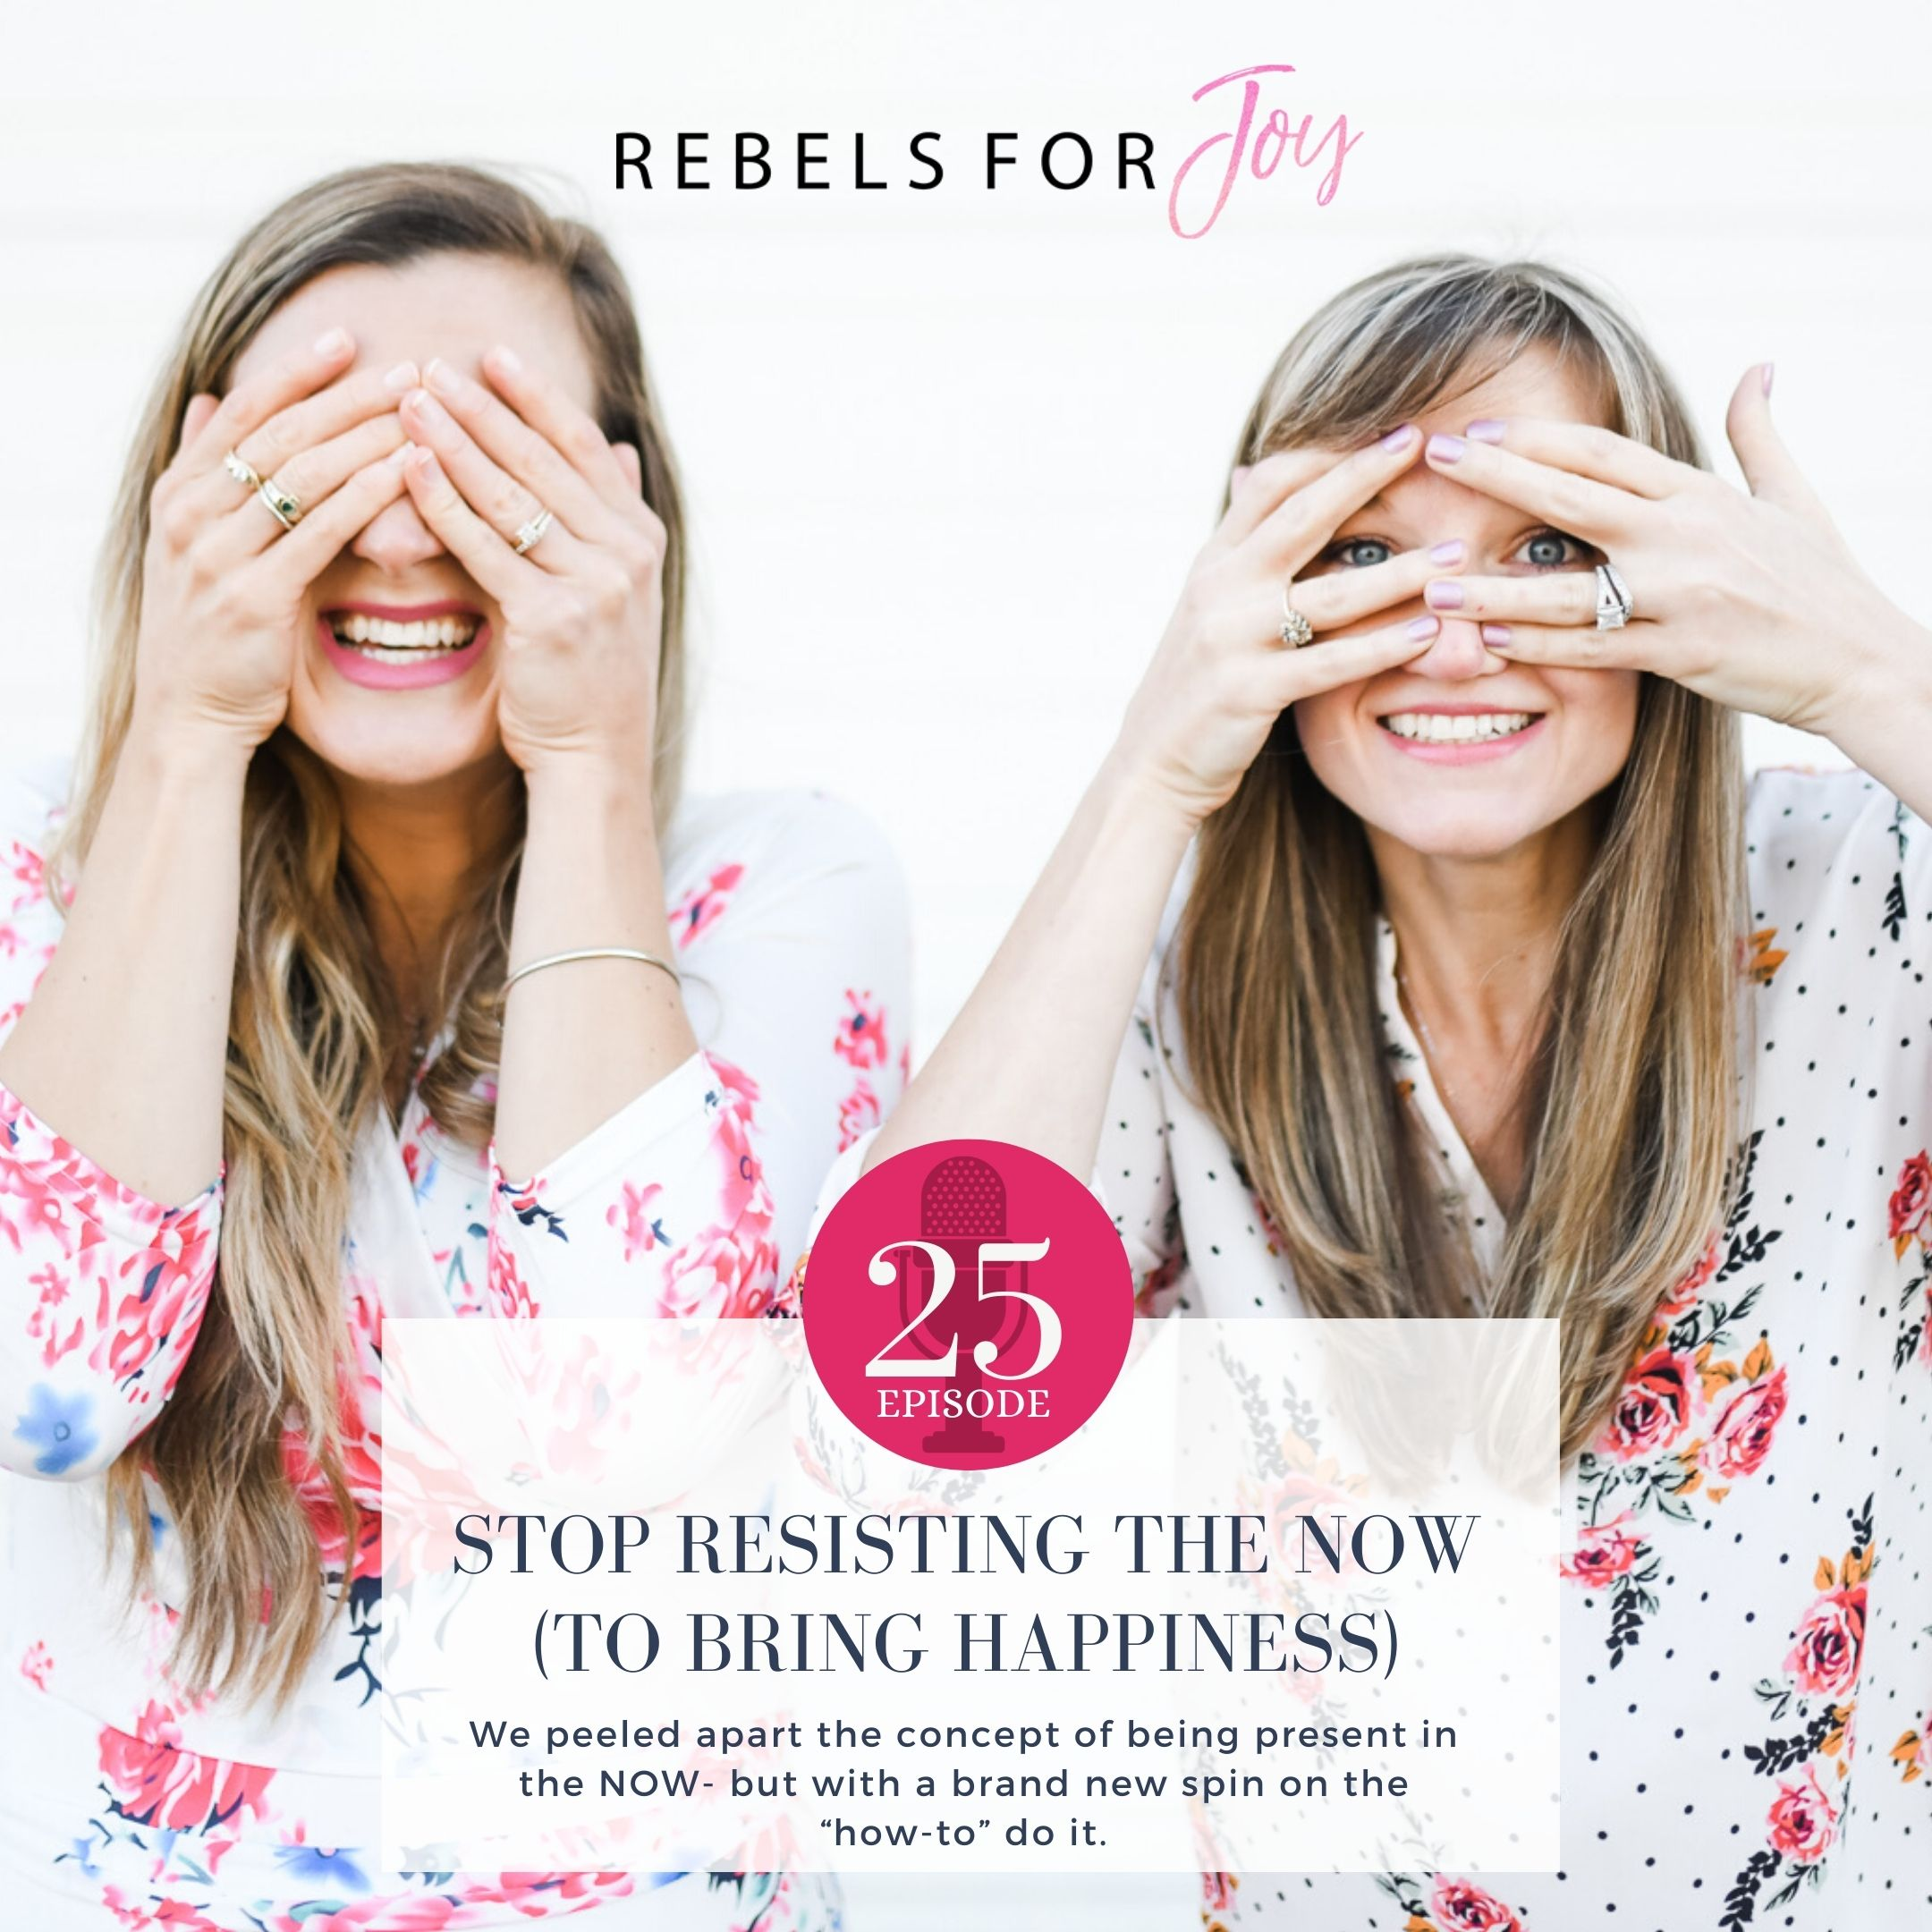 Episode 25: Stop Resisting the NOW (to bring Happiness)